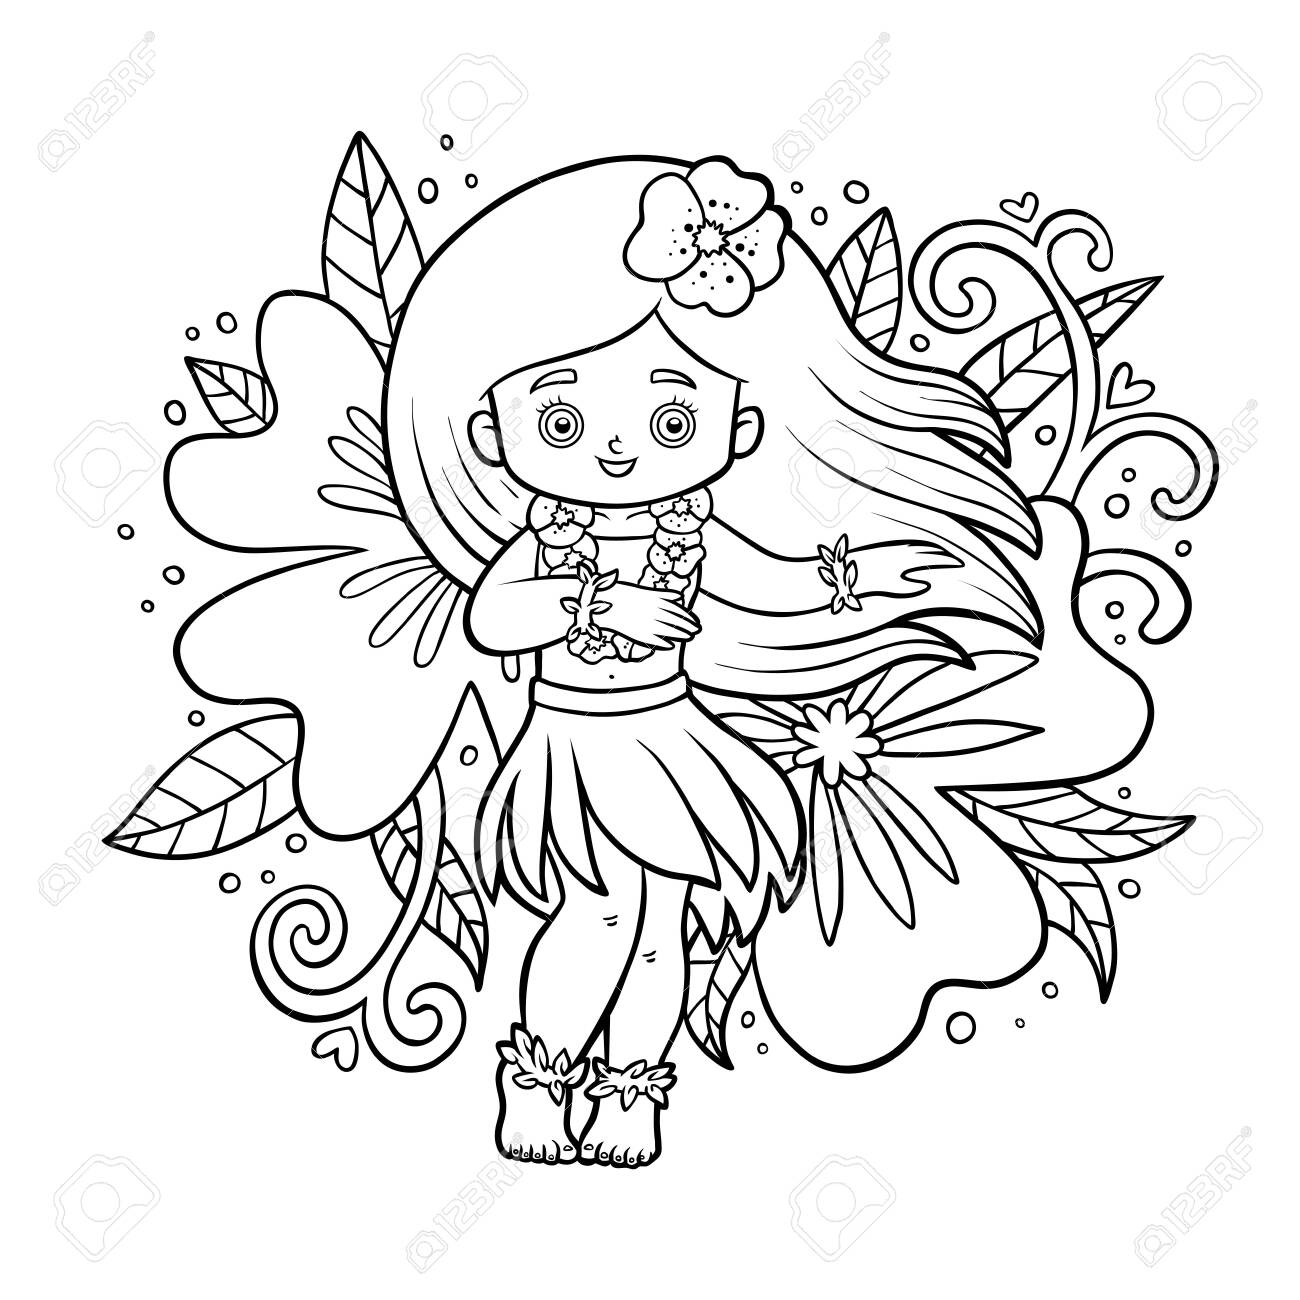 Free hula dancers coloring pages | Coloring pages, Free coloring ... | 1300x1300